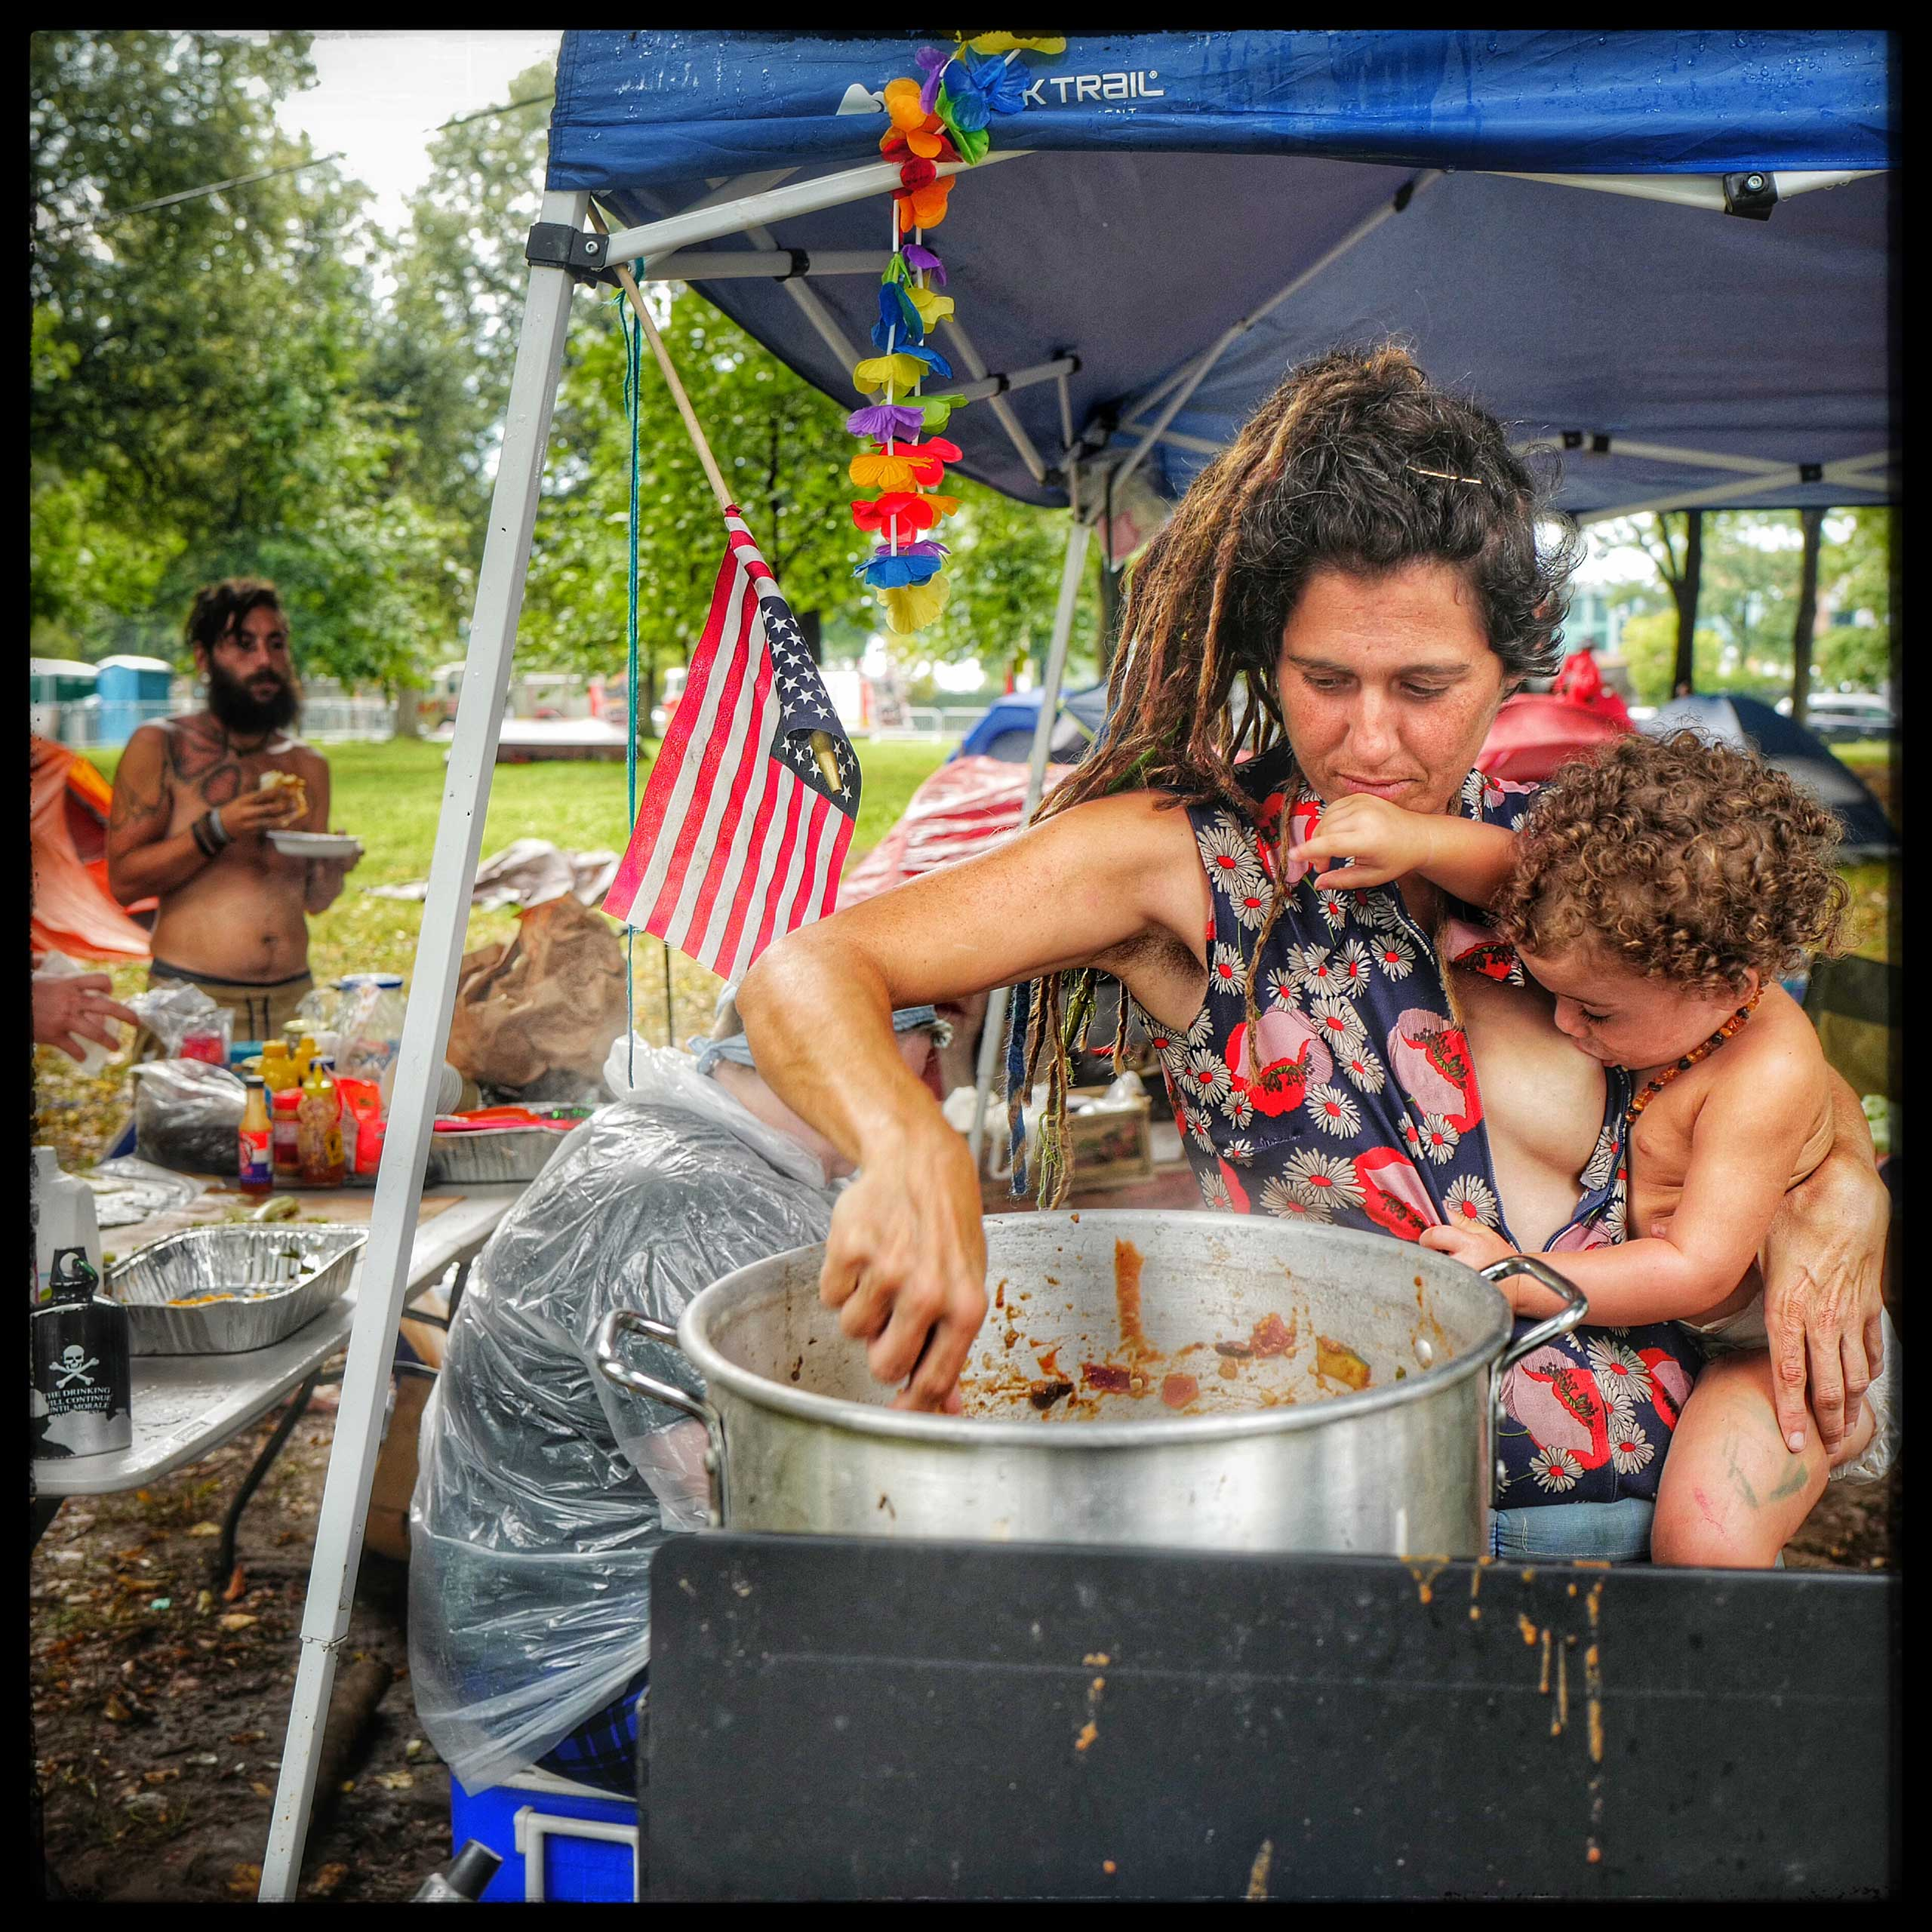 Stacey and her daughter Joy prepare a pot of zucchini, tomatoes and squash for protestors at the Democratic National Convention that was held in Philadelphia.